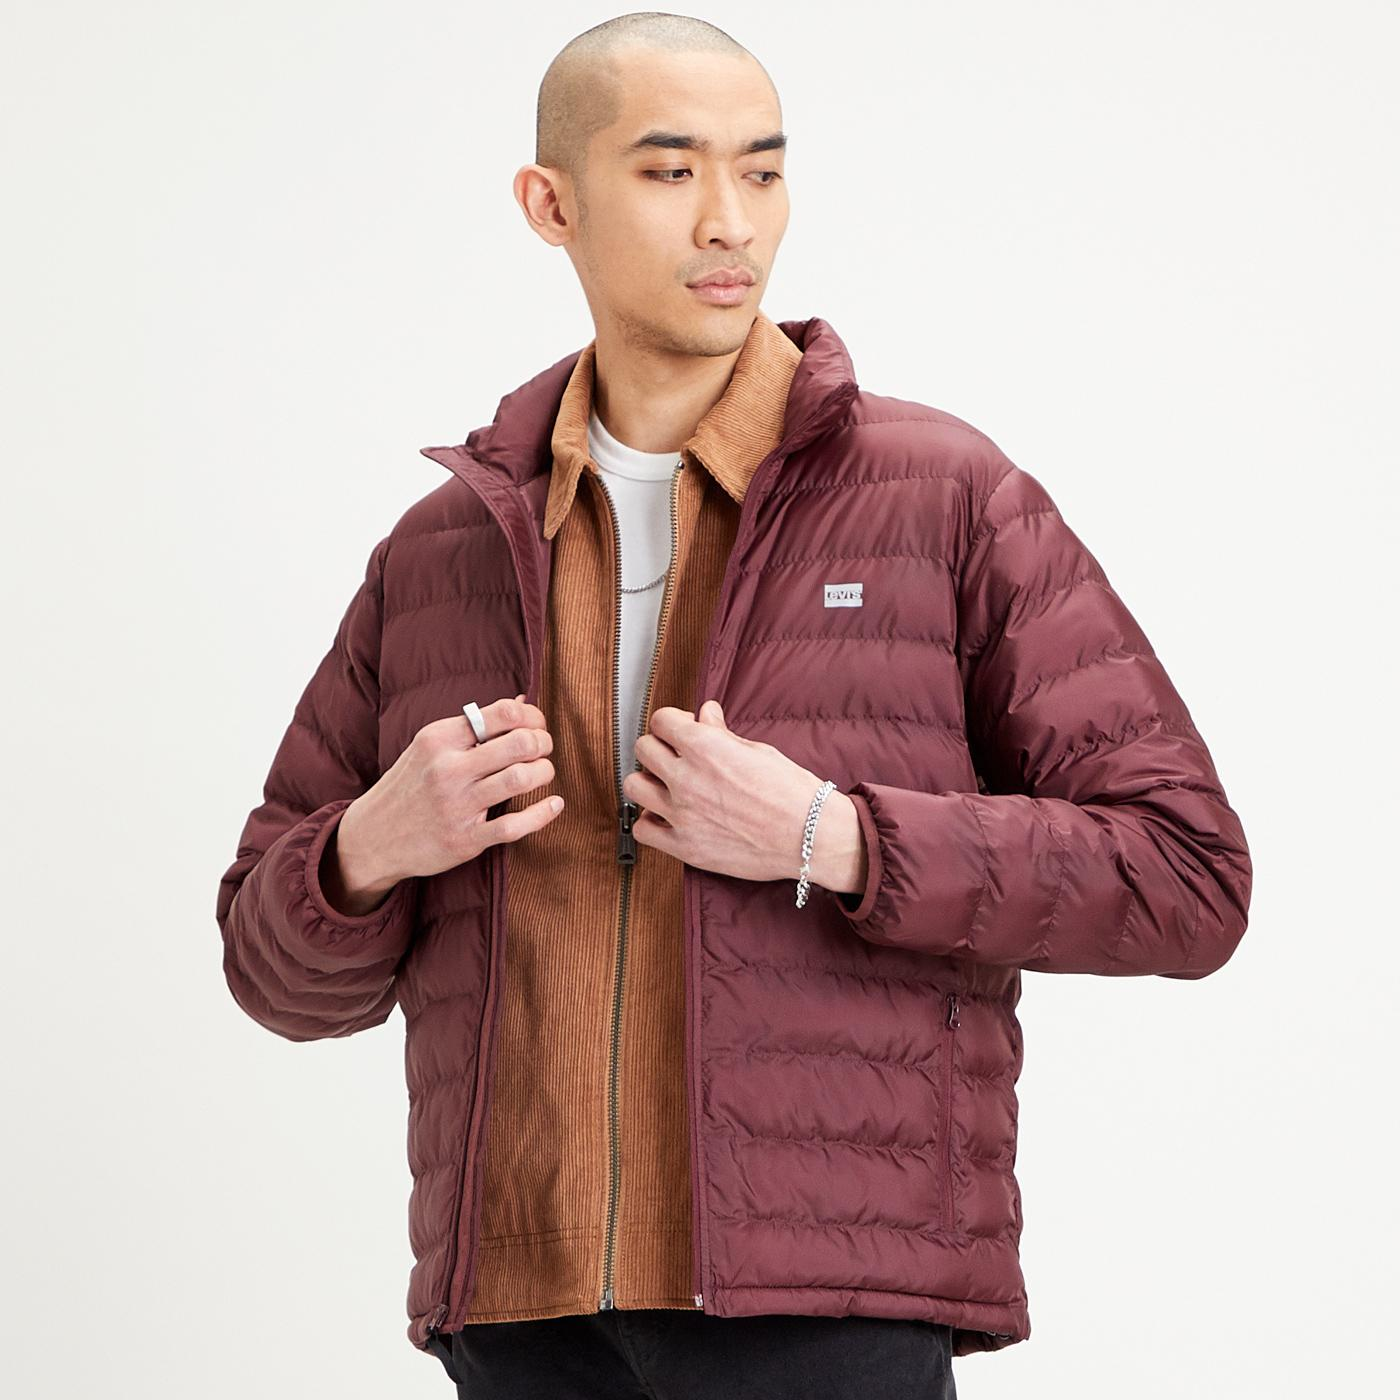 Presidio LEVI'S Retro Packable Quilted Jacket (SR)